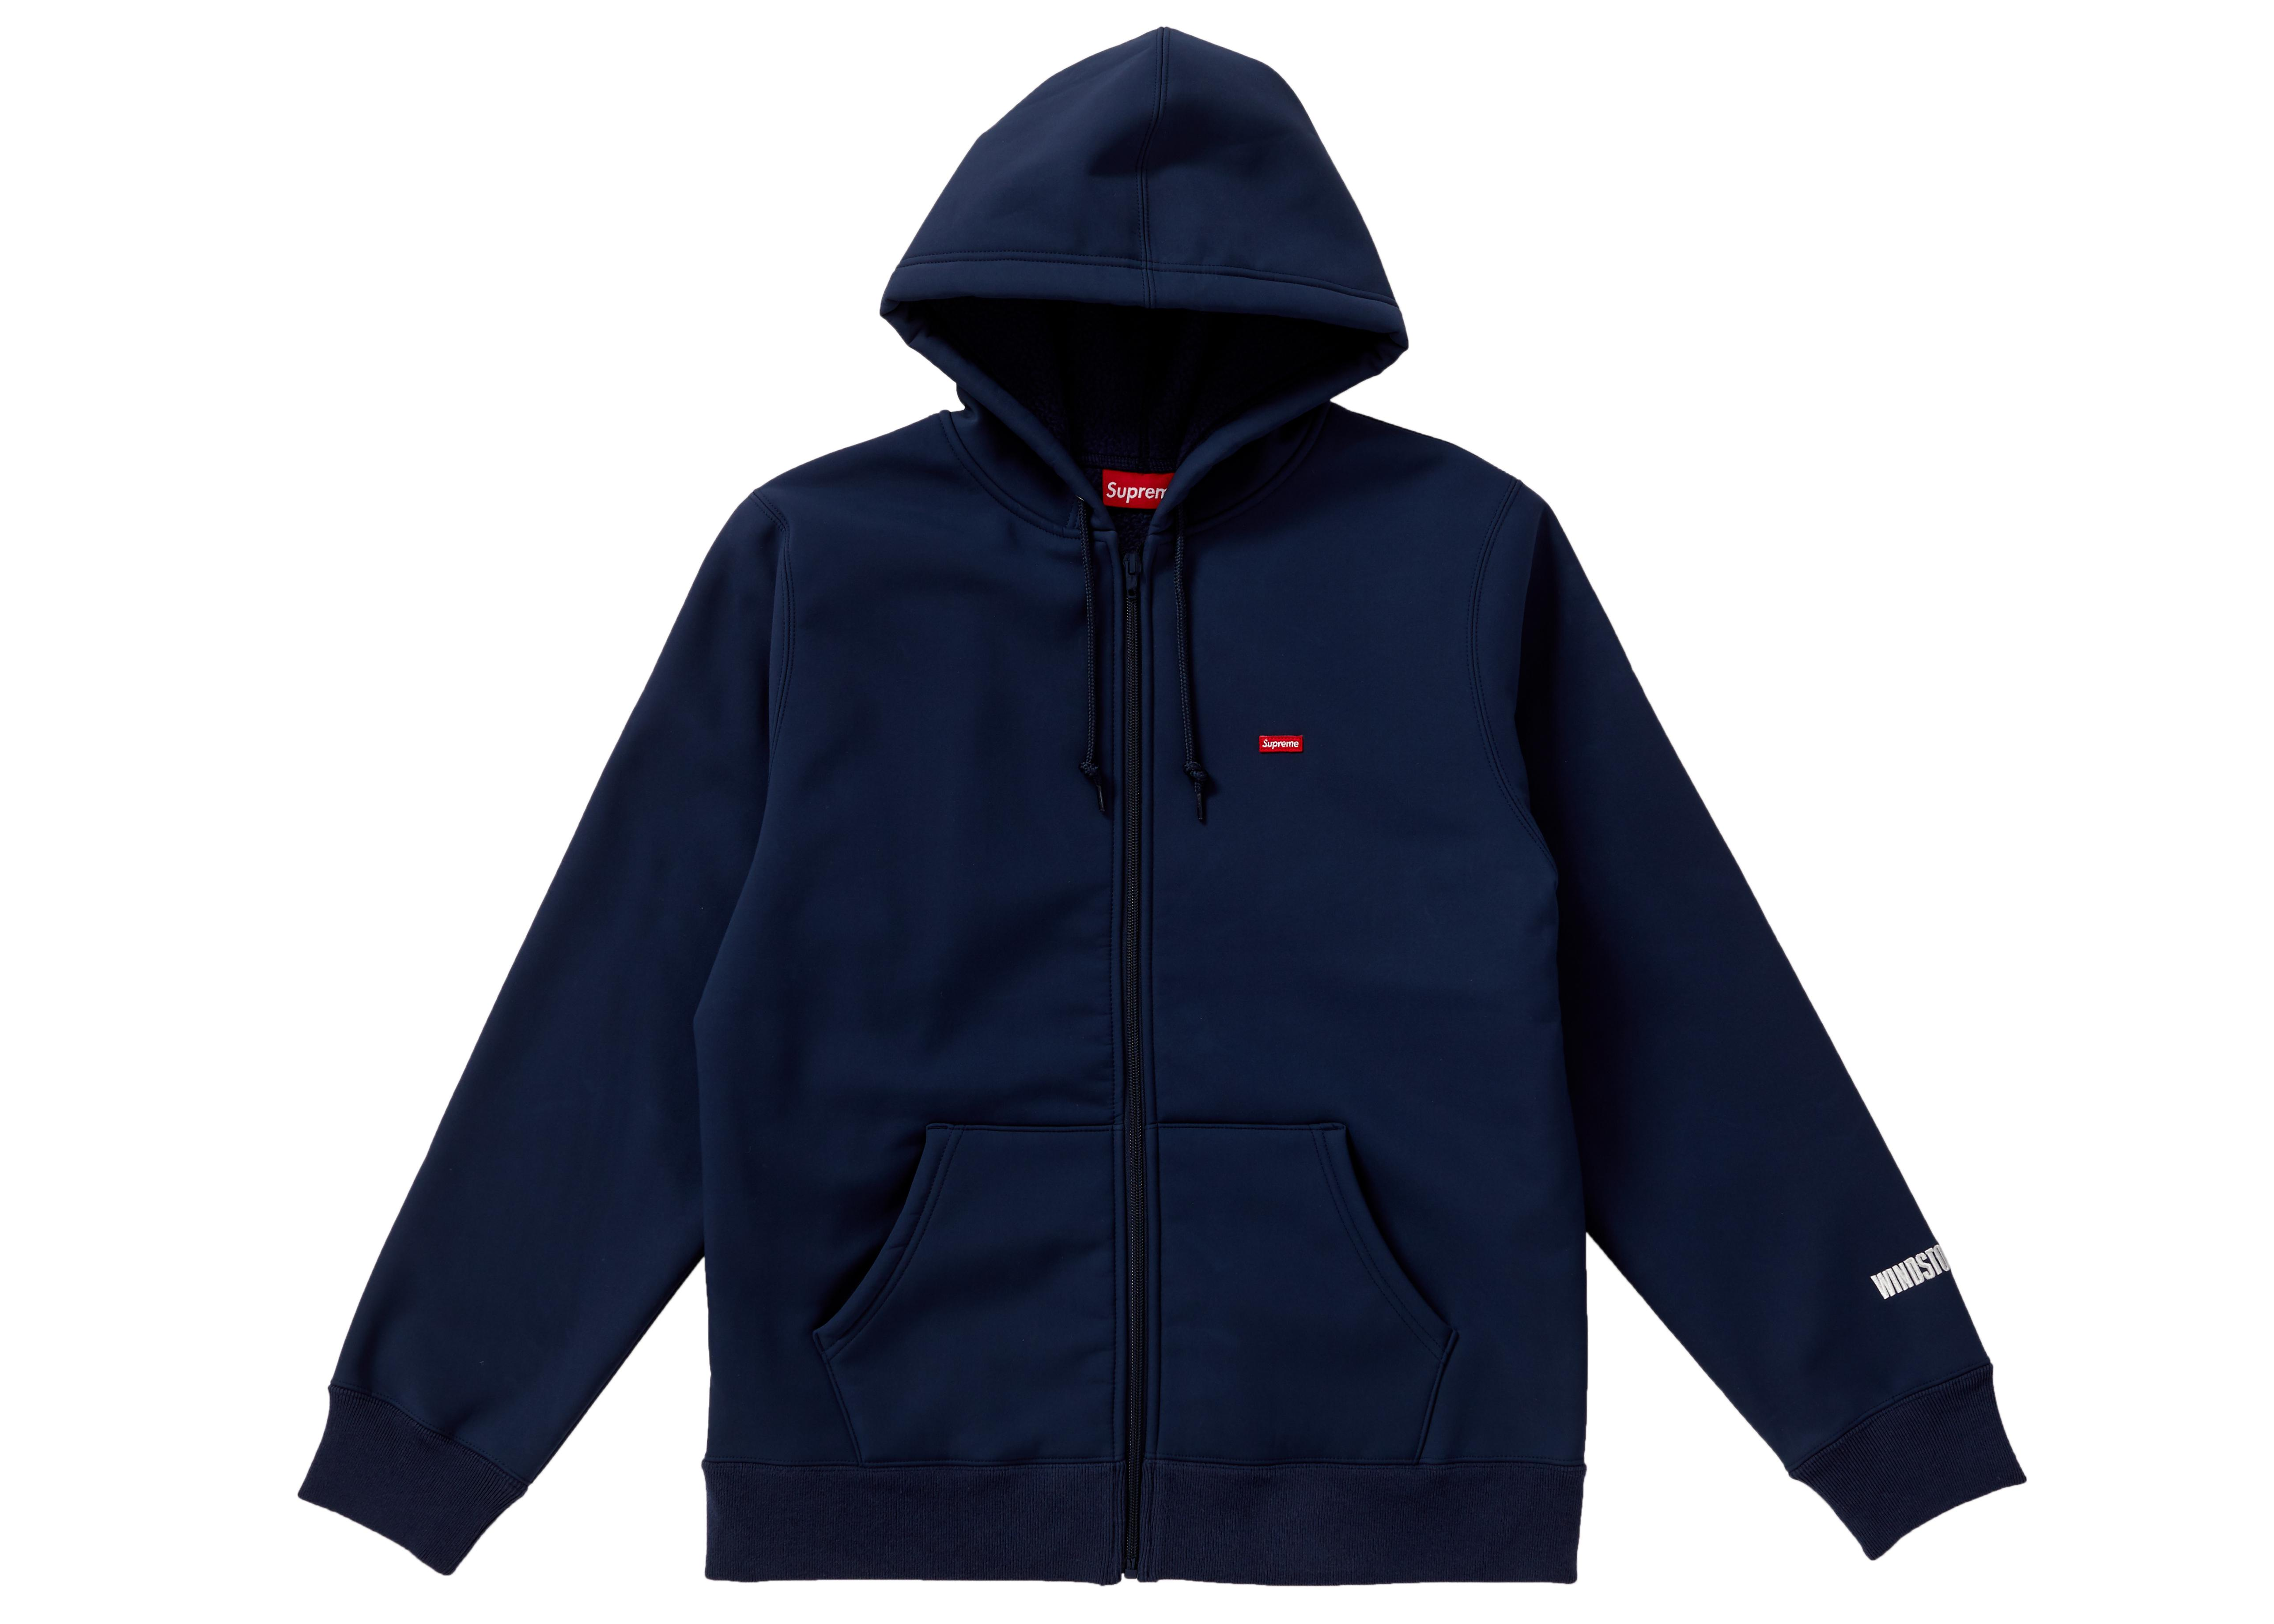 23db33e2ff50 Supreme - Blue Windstopper Zip Up Hooded Sweatshirt Navy for Men - Lyst.  View fullscreen